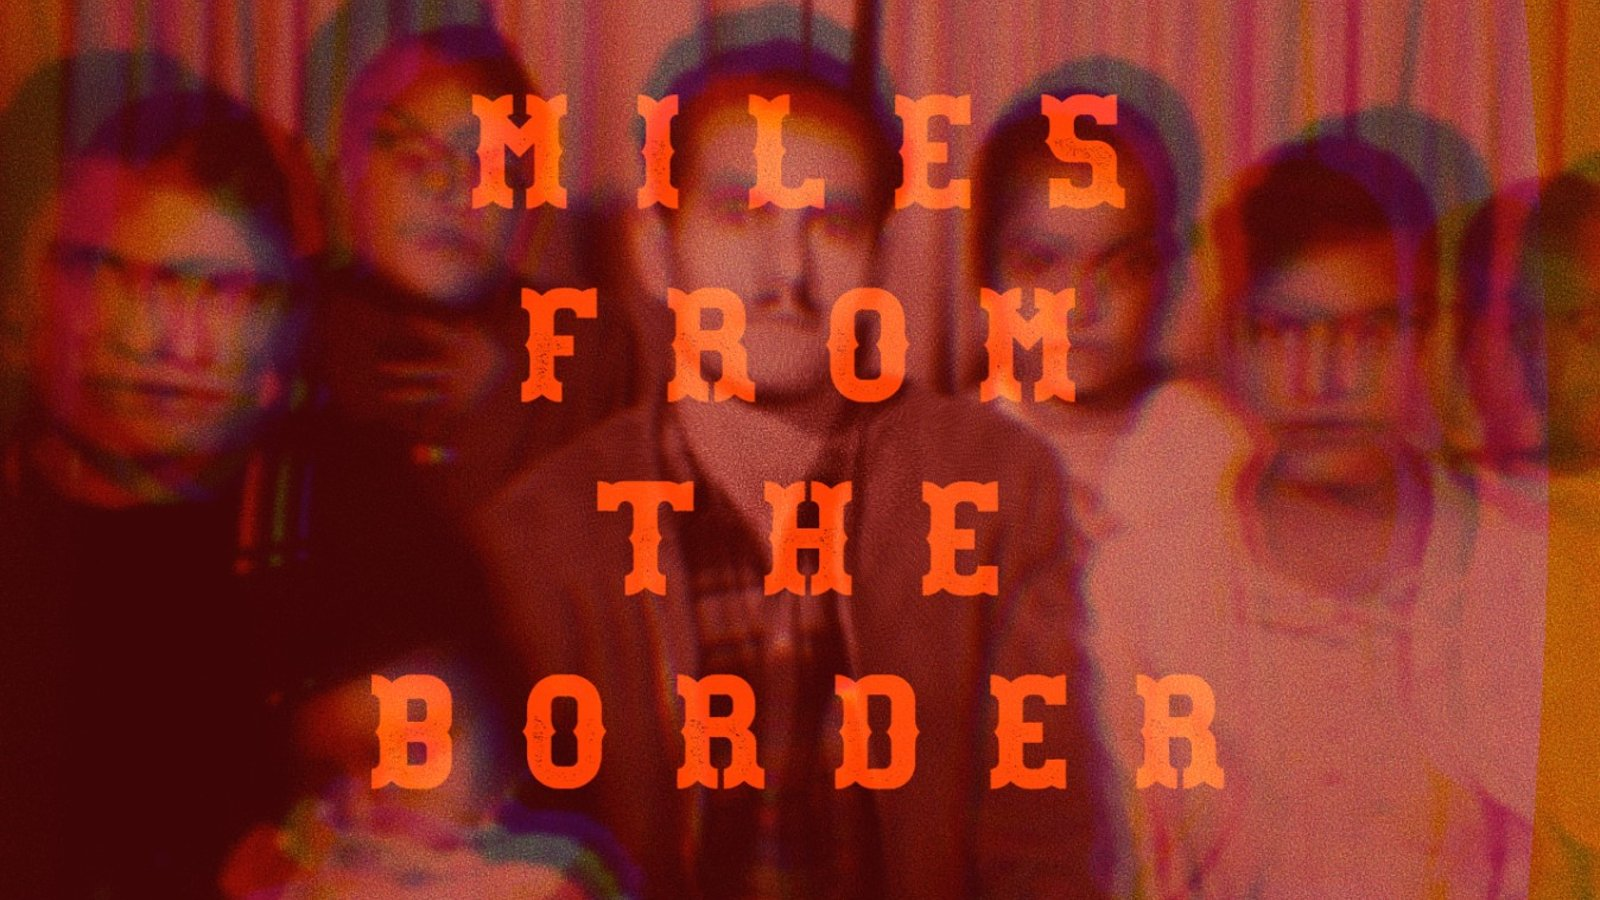 Miles From the Border - A Portrait of the Immigrant Experience